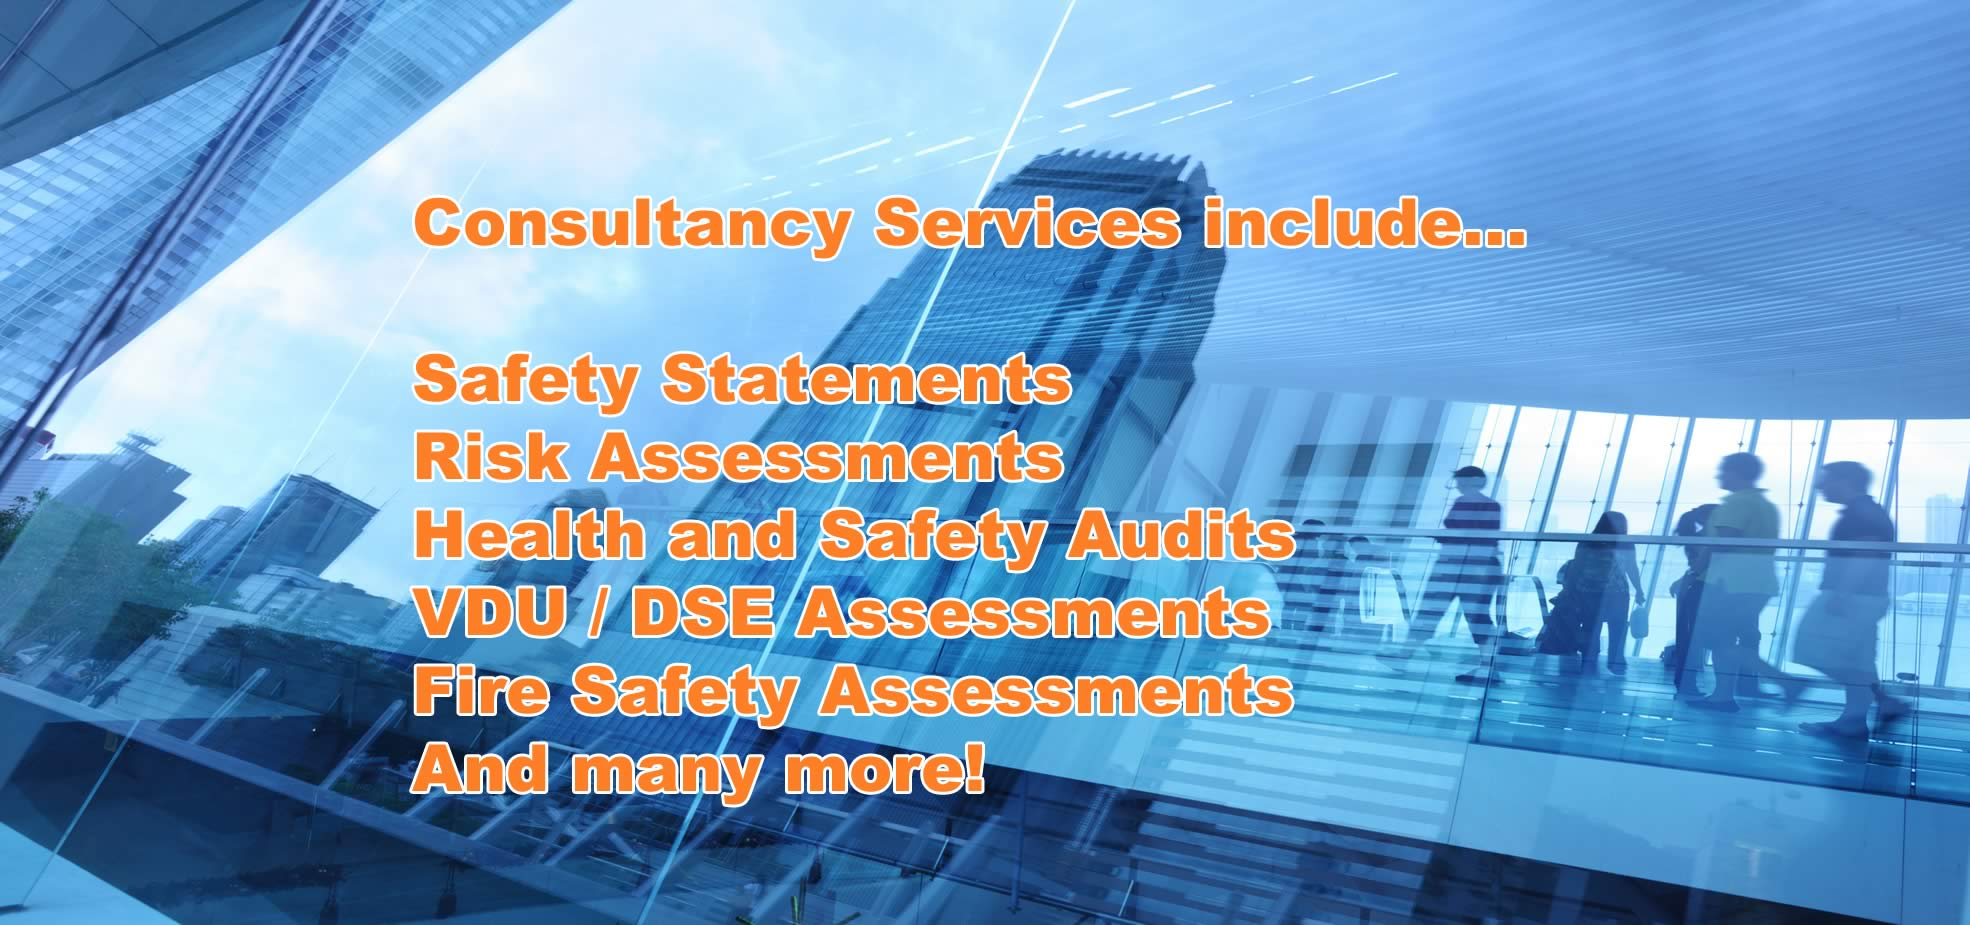 adsc consultancy services